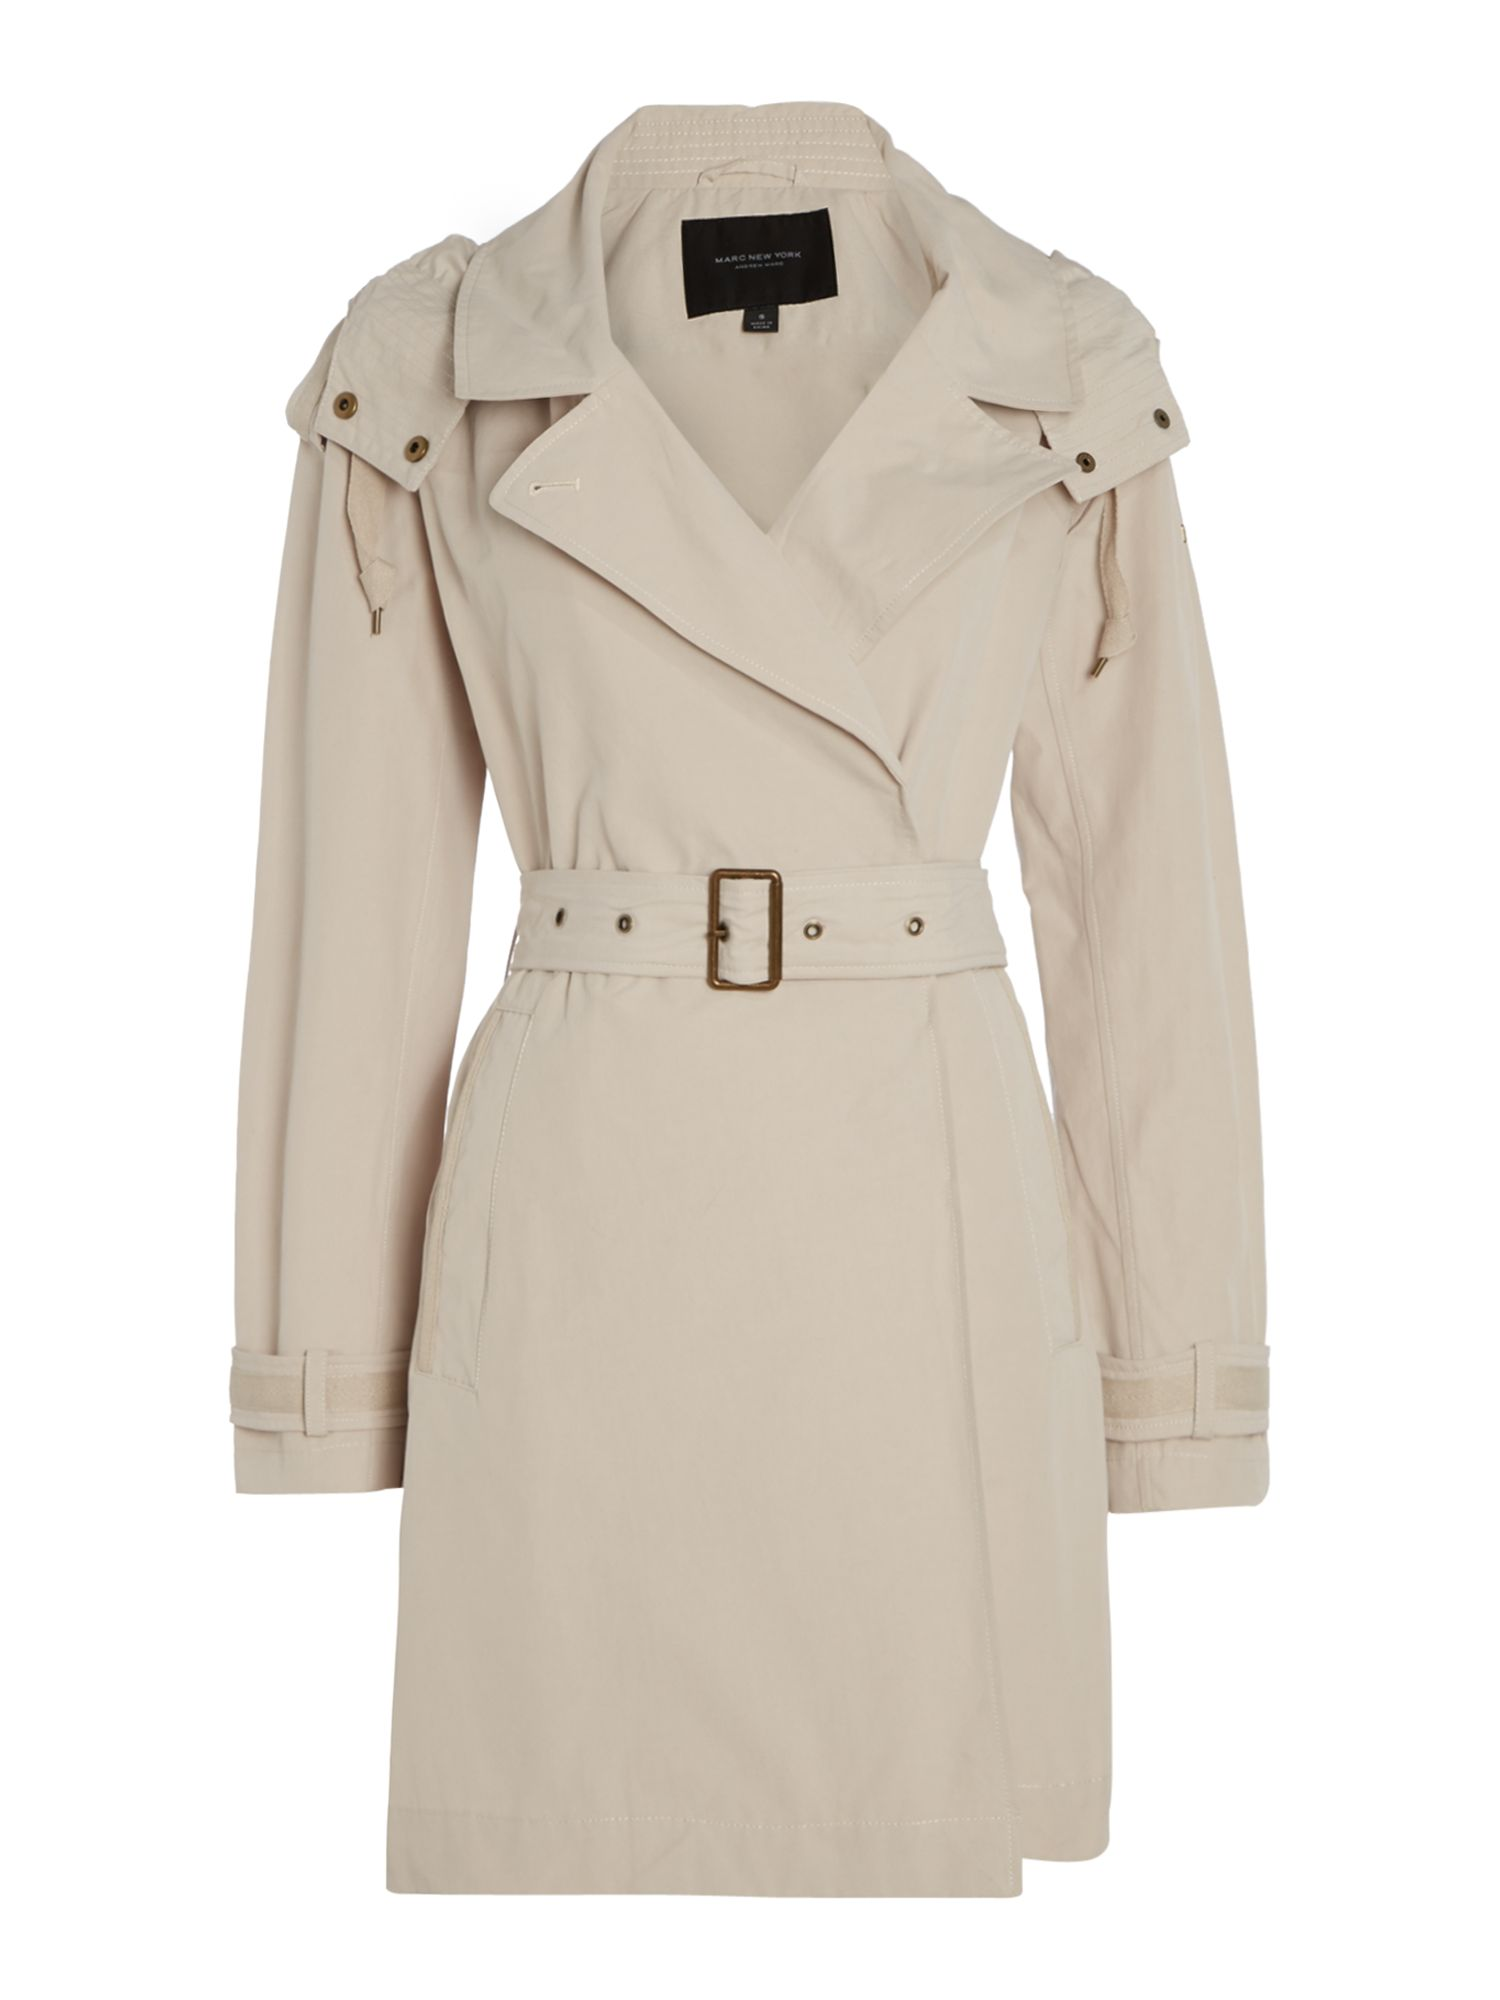 Andrew Marc BROOKE trench coat with hood, White